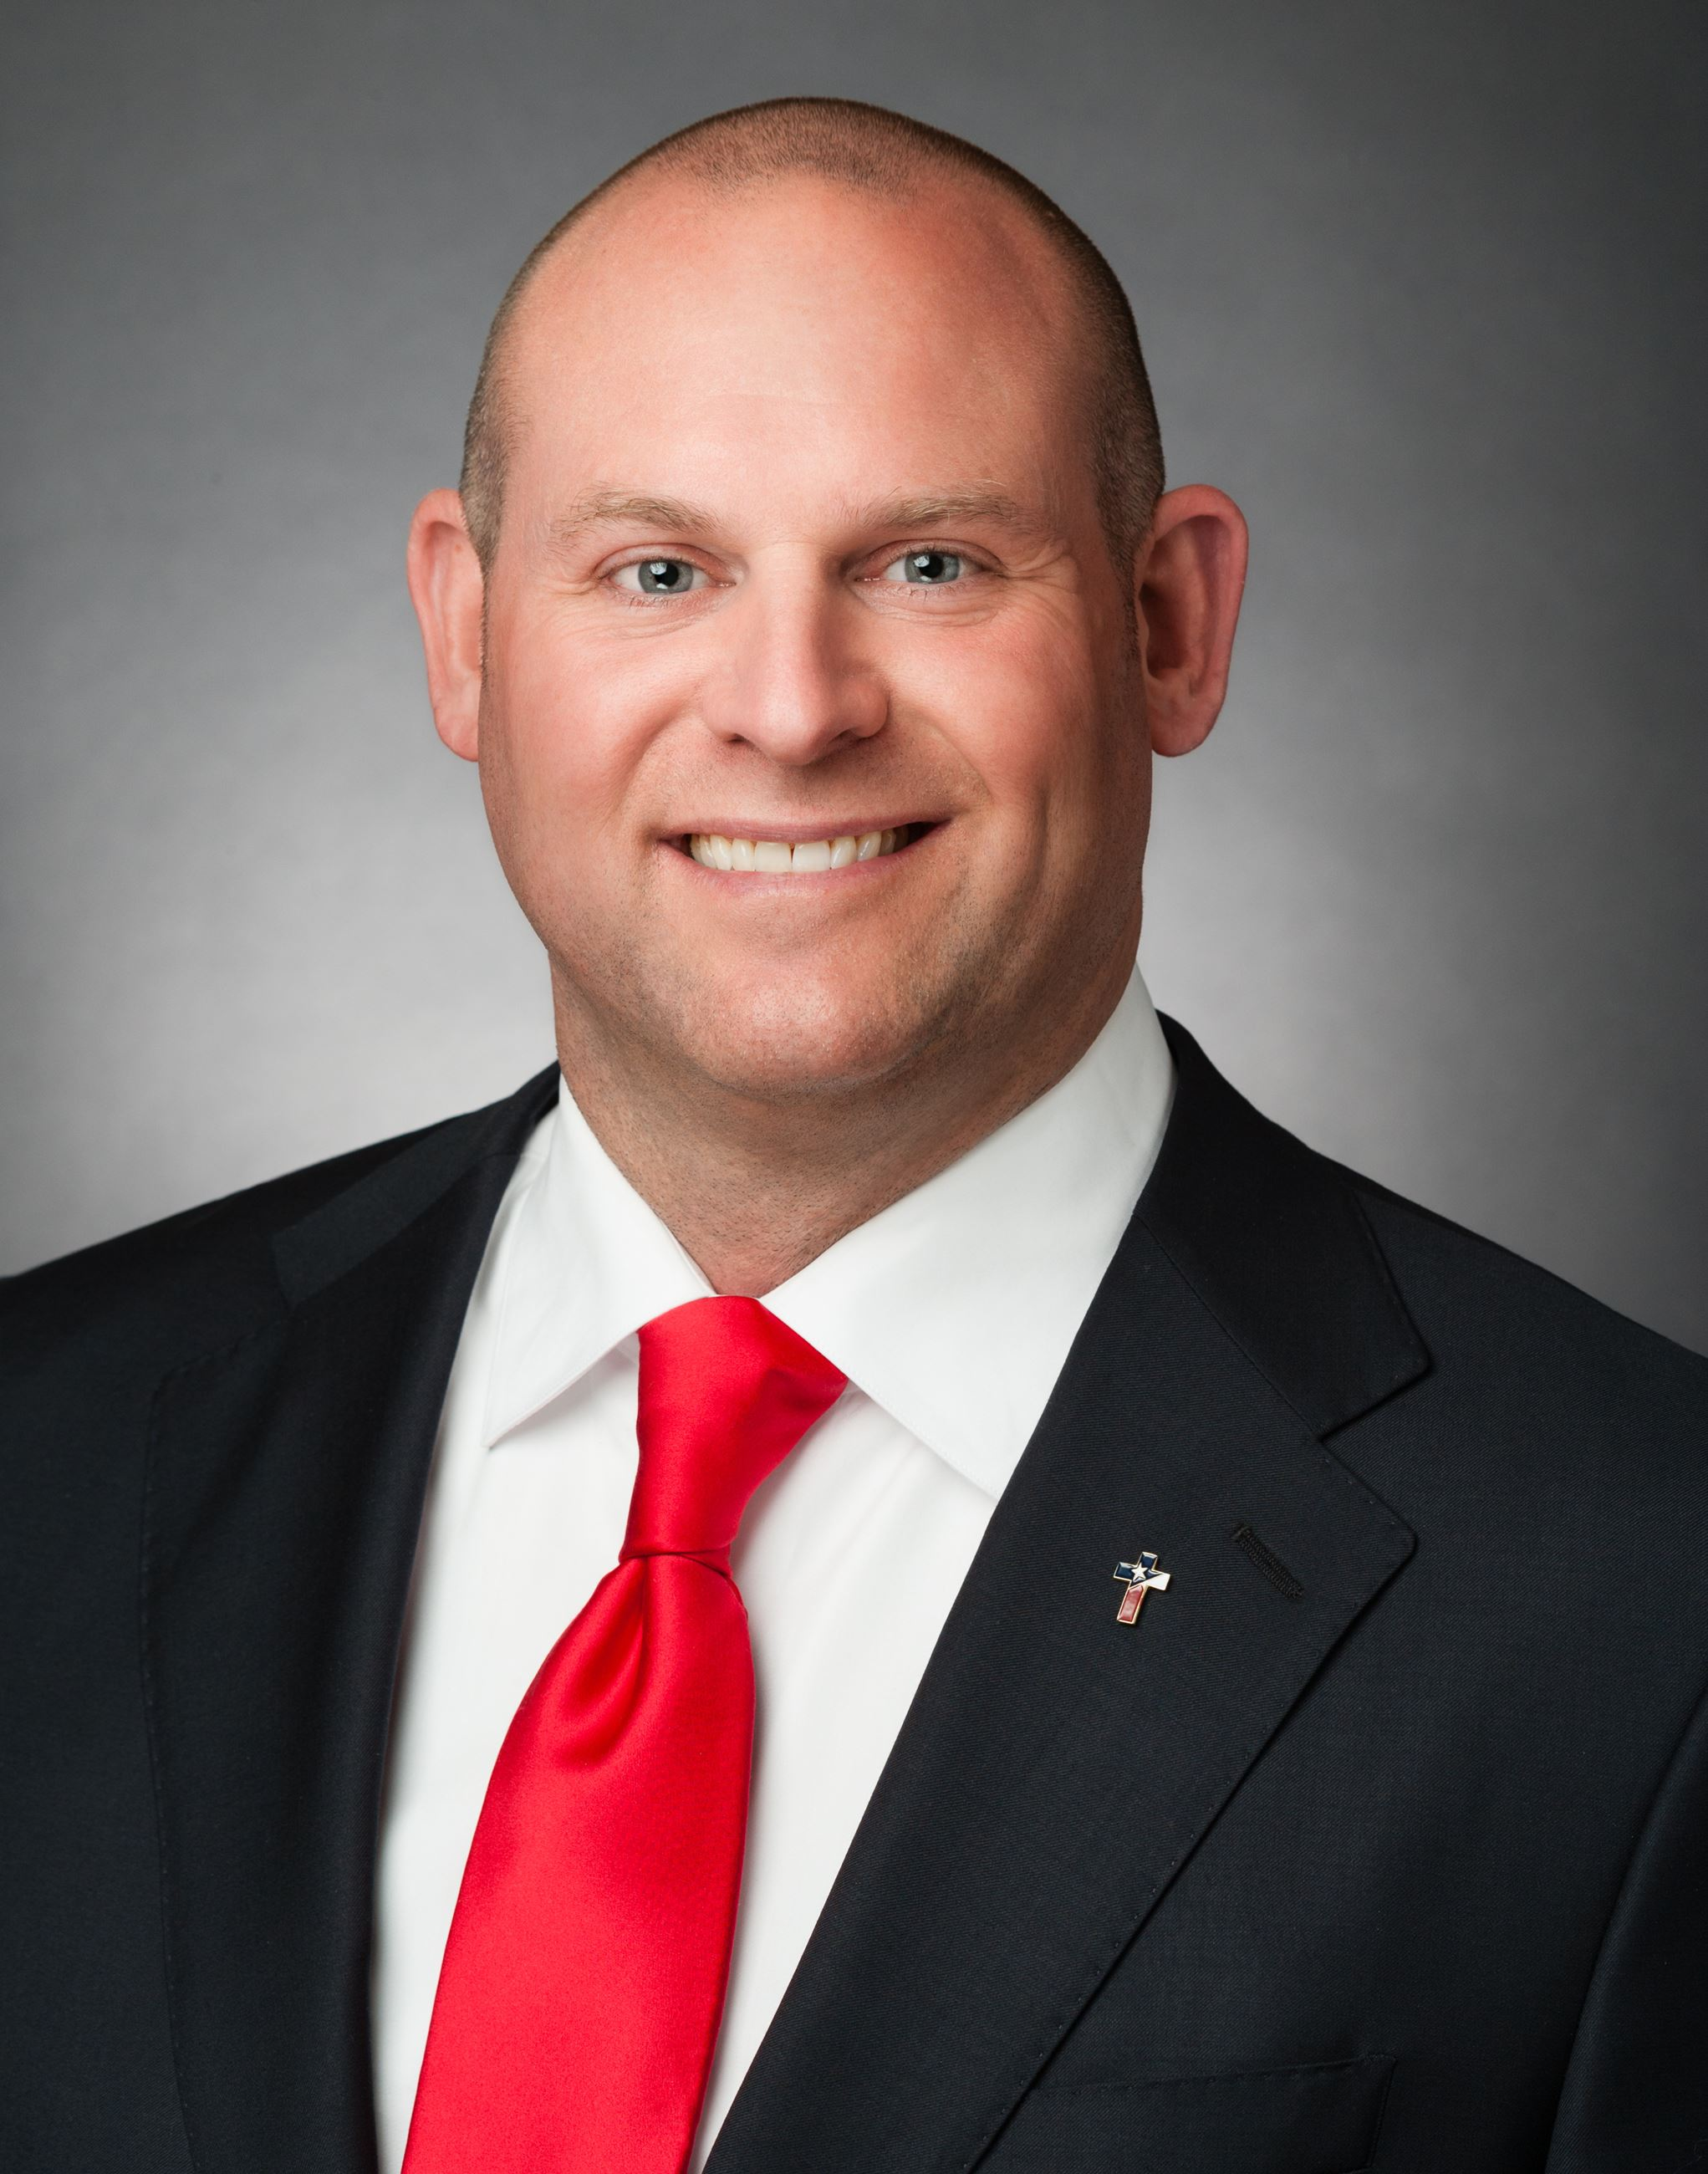 The Honorable Ryan Williams - Commissioner Precinct 1